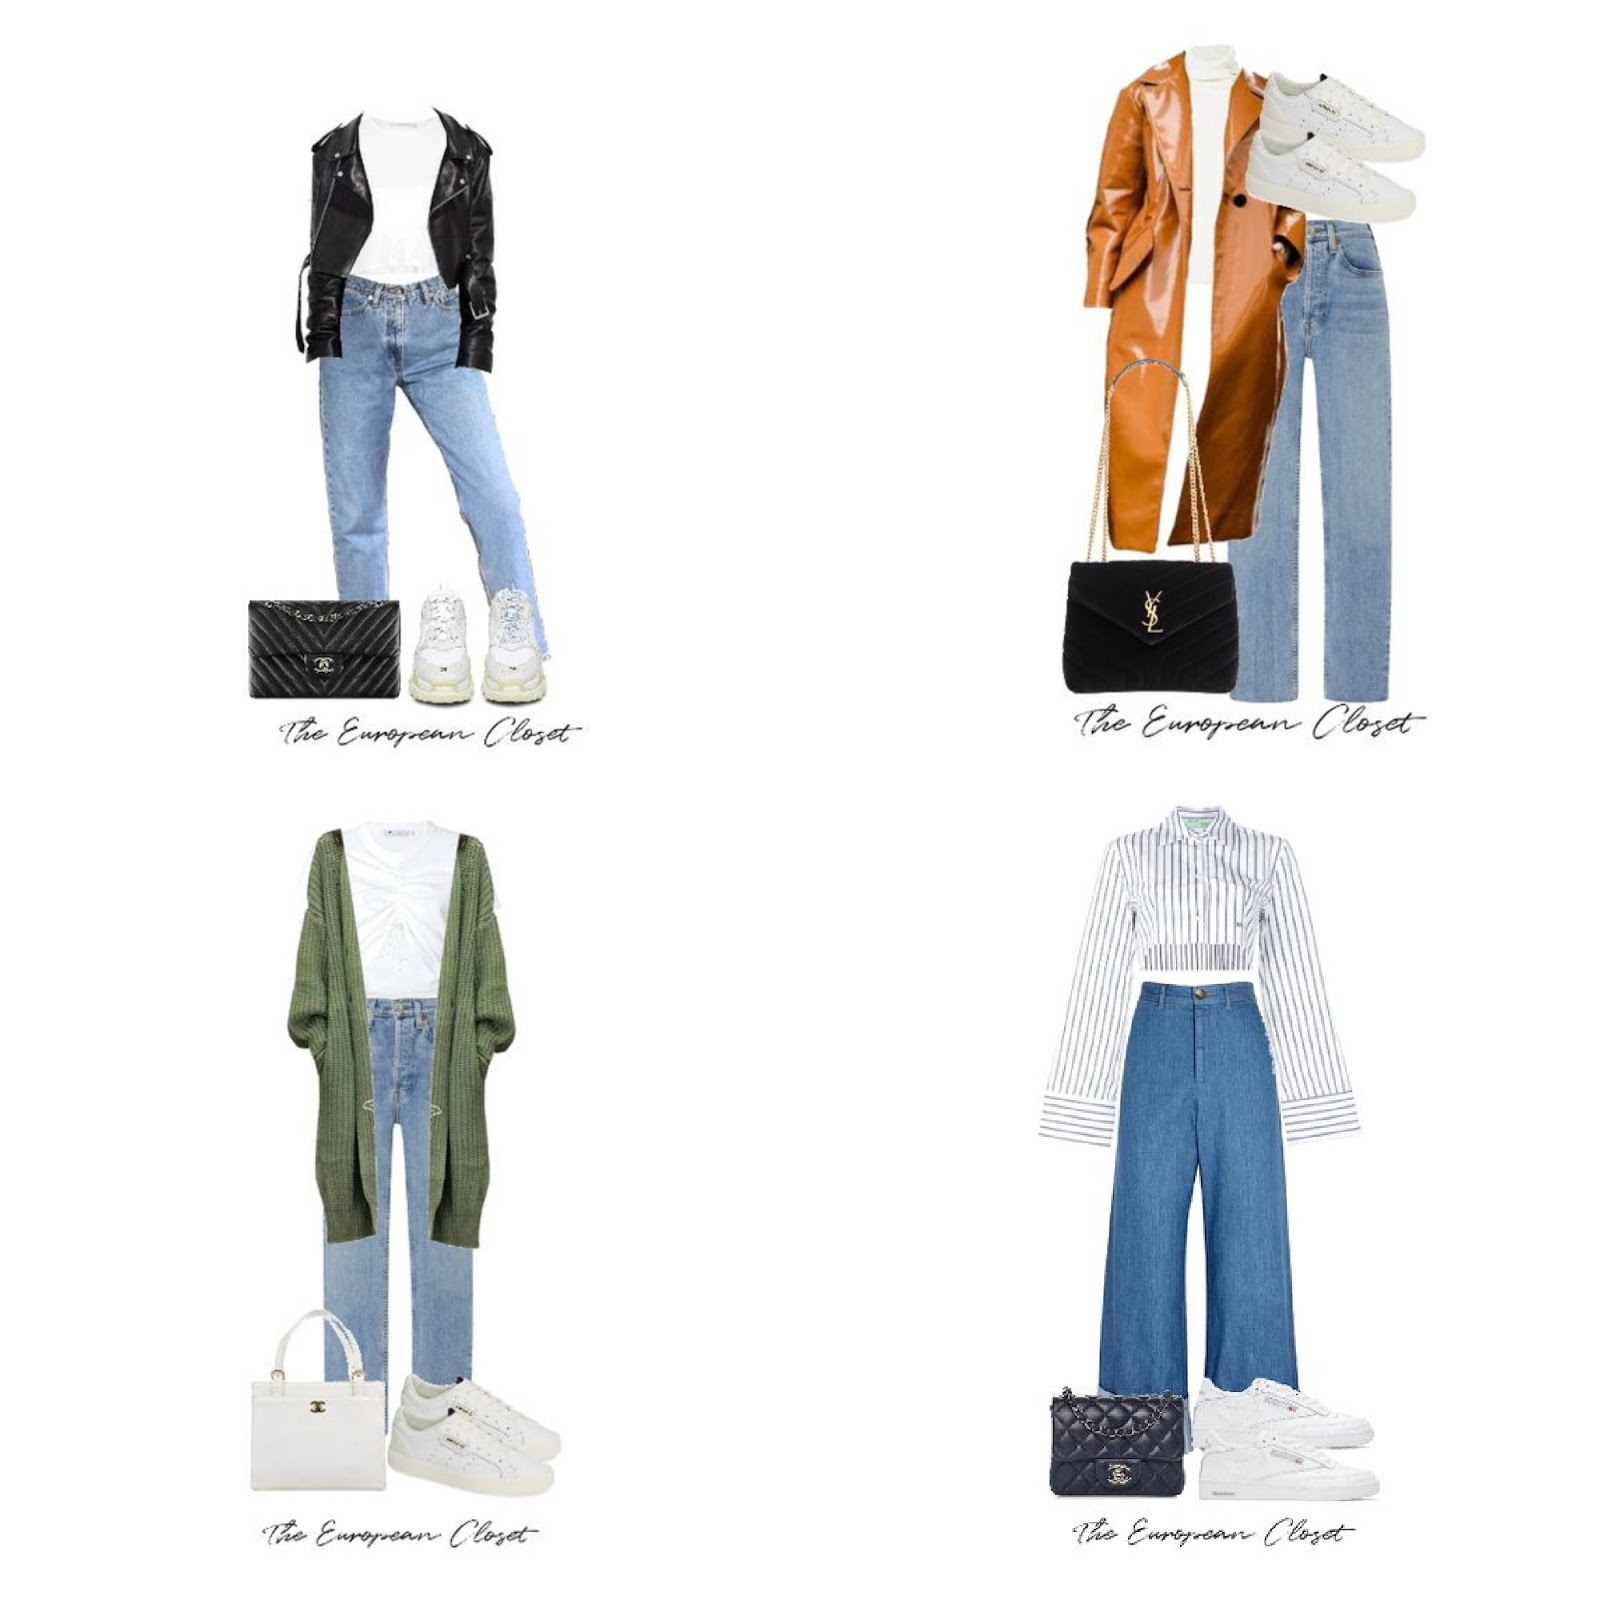 I've put together 16 outfits with sneakers you can recreate so you can look put together while wearing your favorite pair of sneakers.